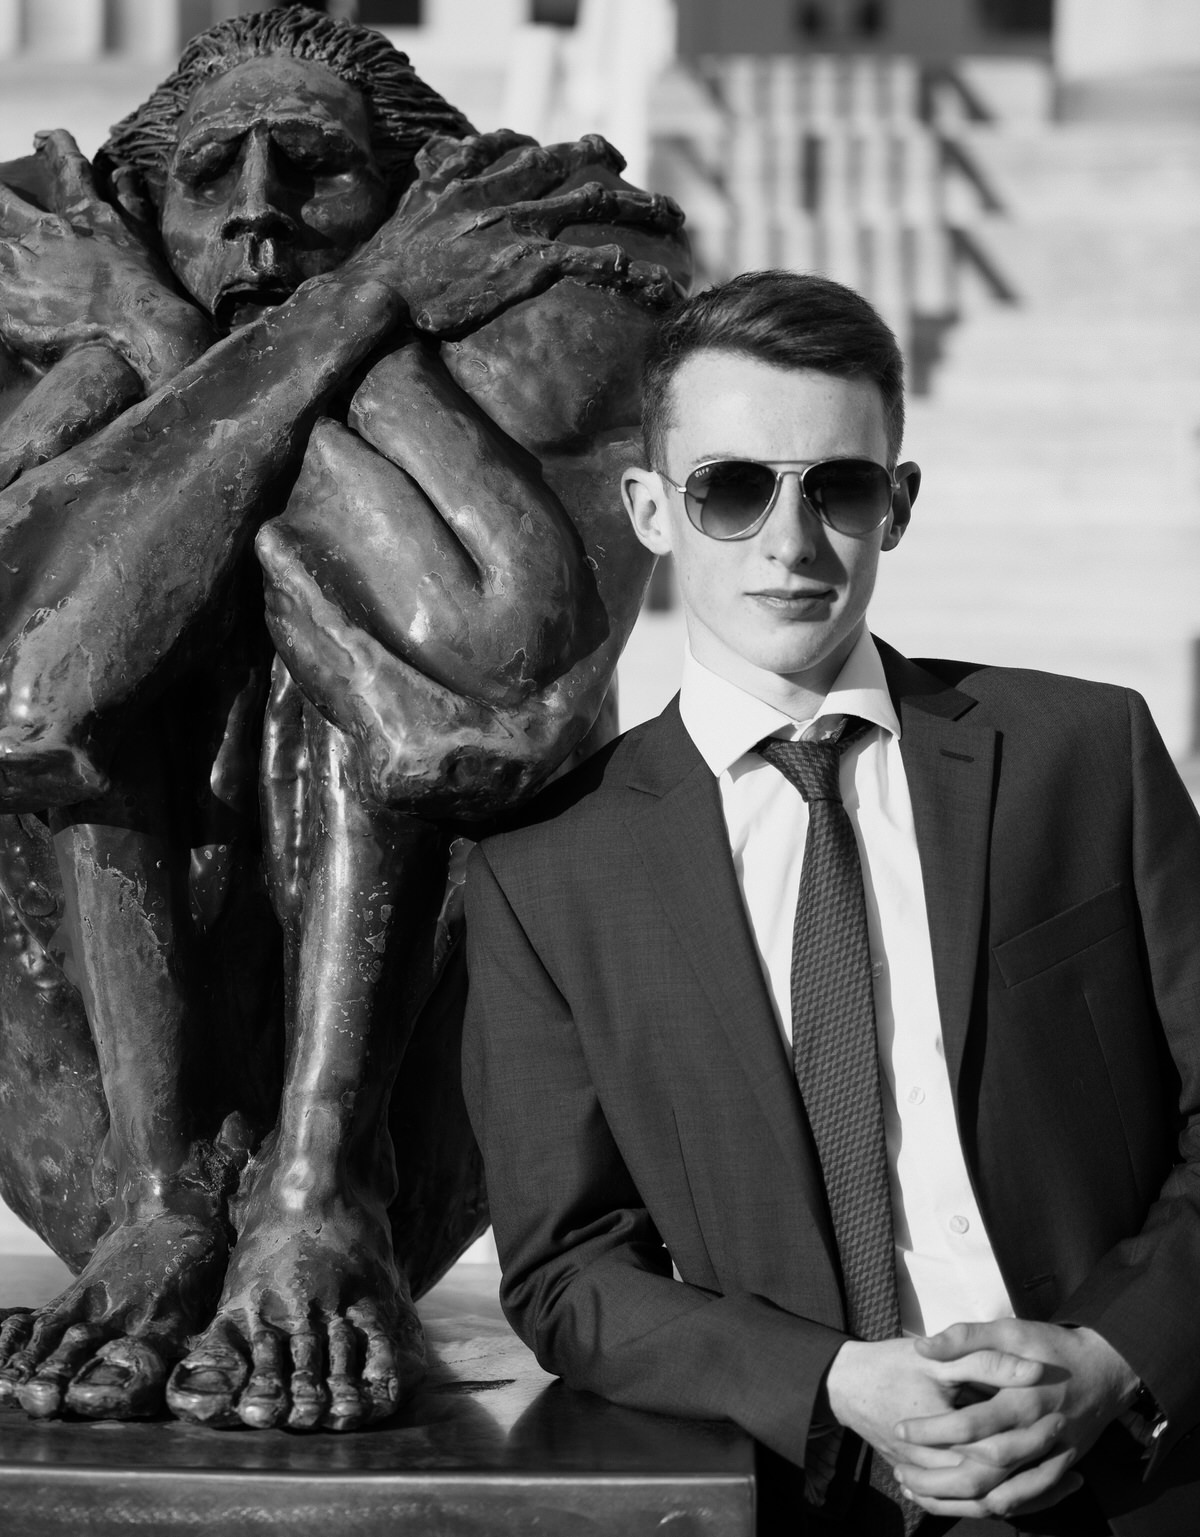 Boy in suit and sunglasses leans against statue for senior portraits in Erie, PA